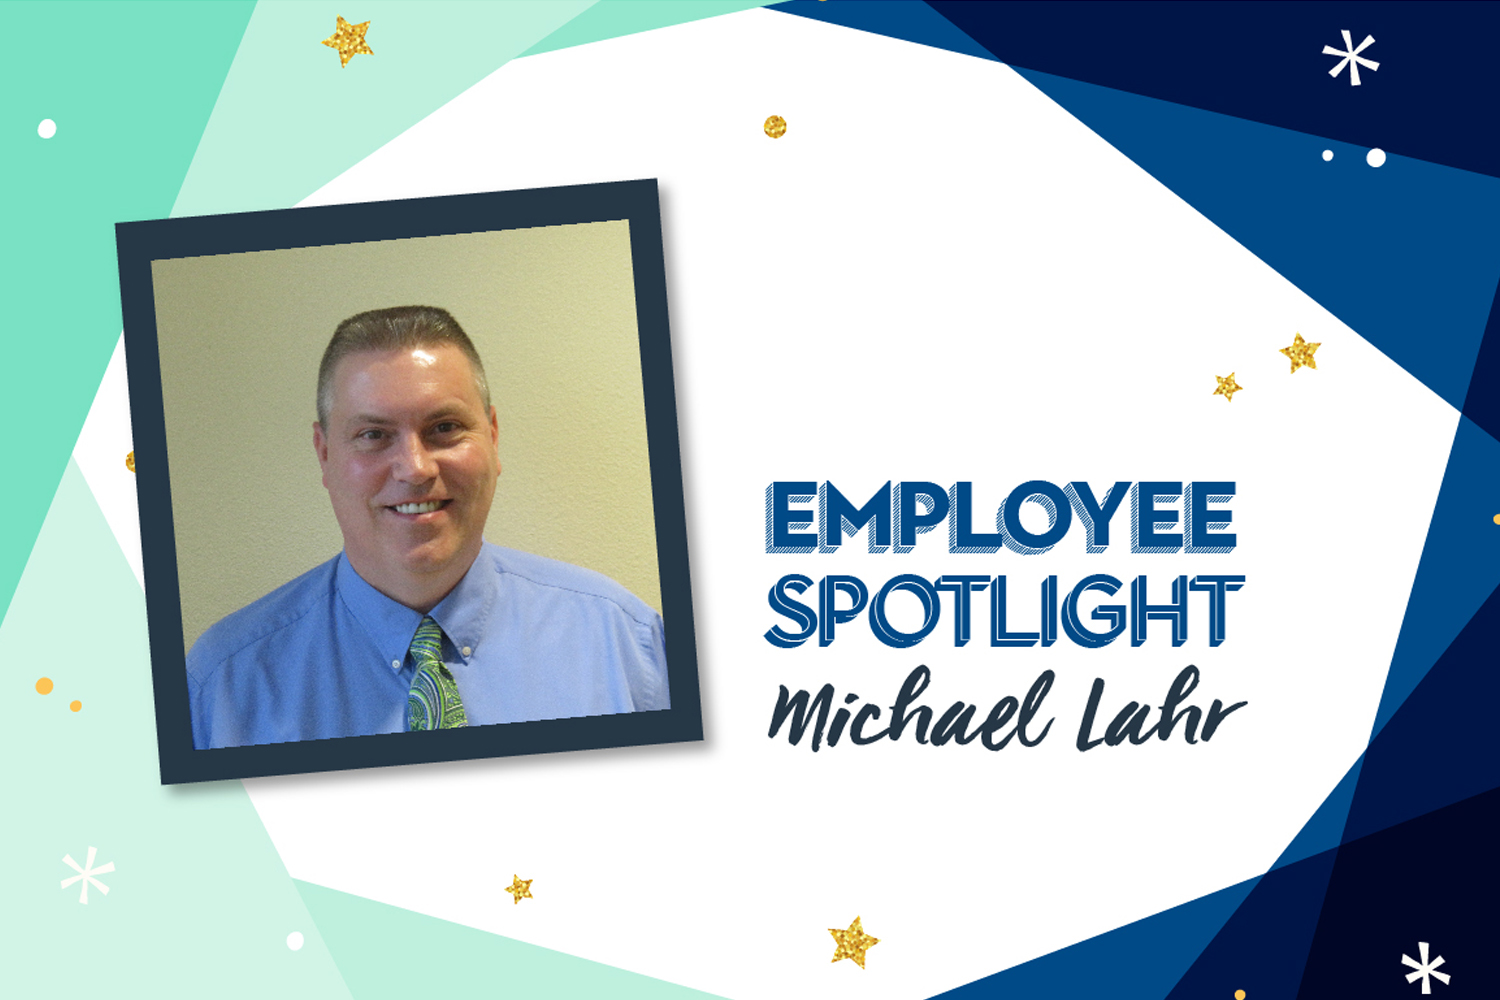 Employee Spotlight: Michael Lahr